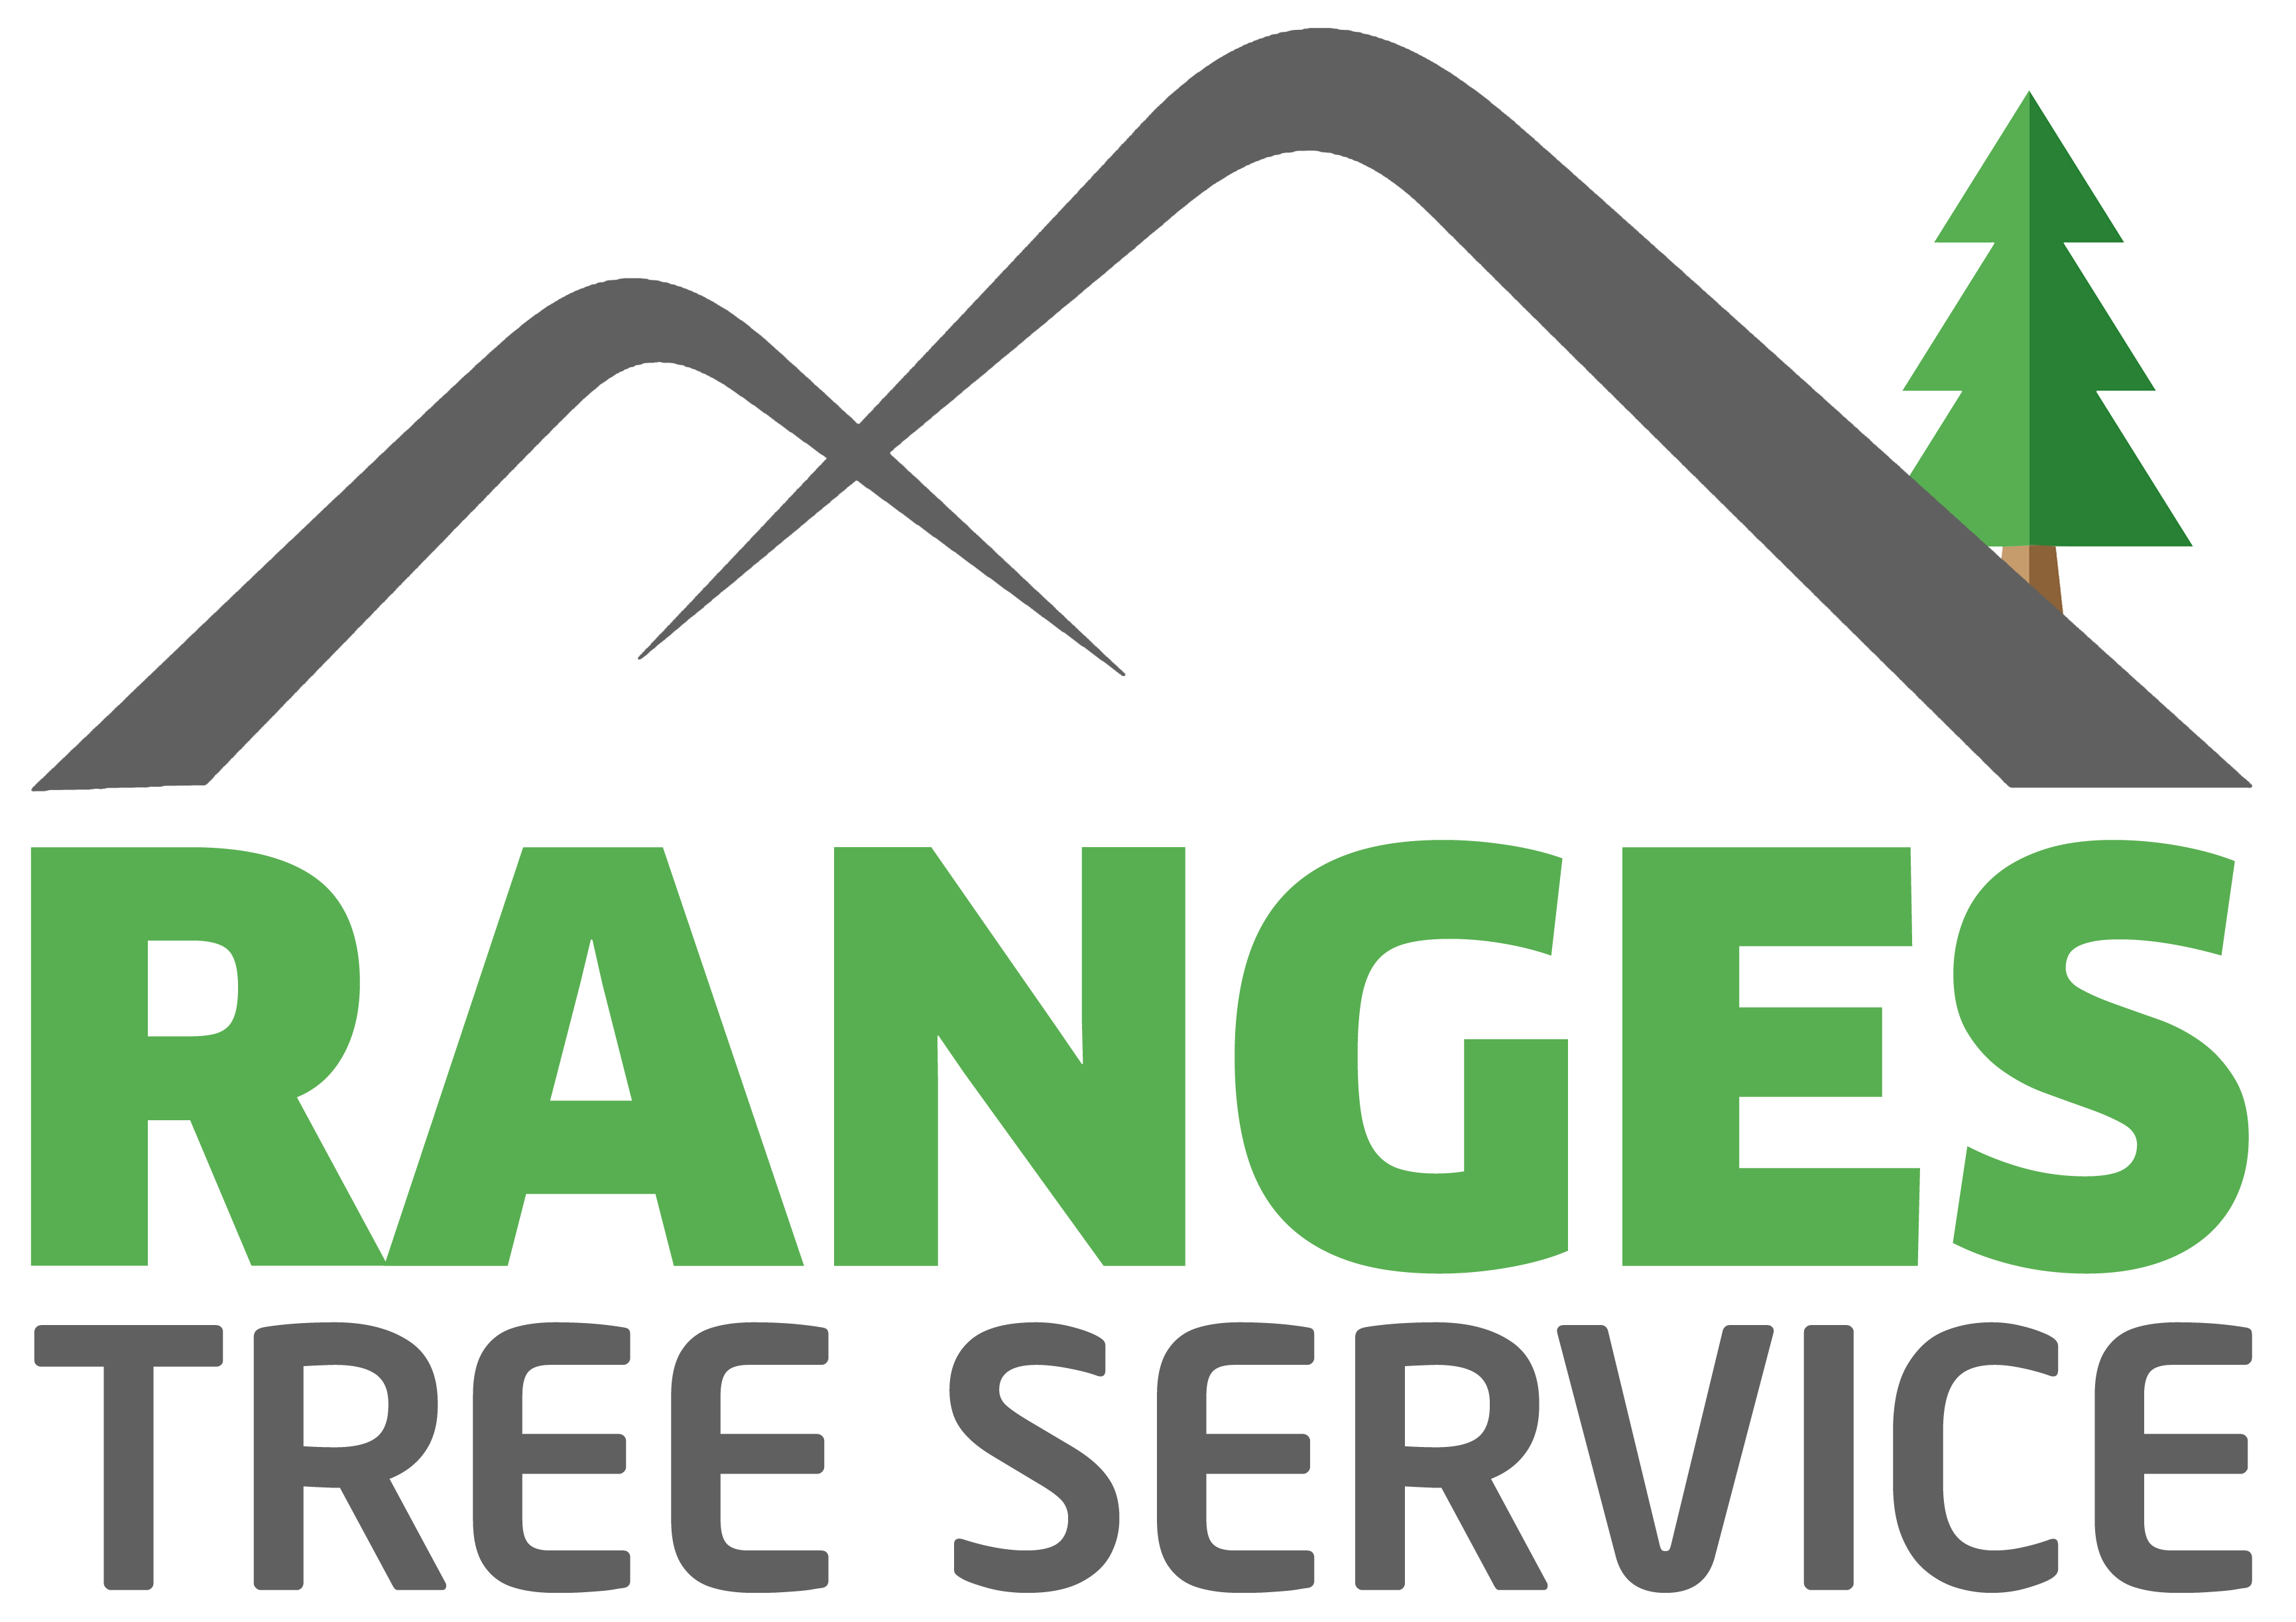 Ranges Tree Service